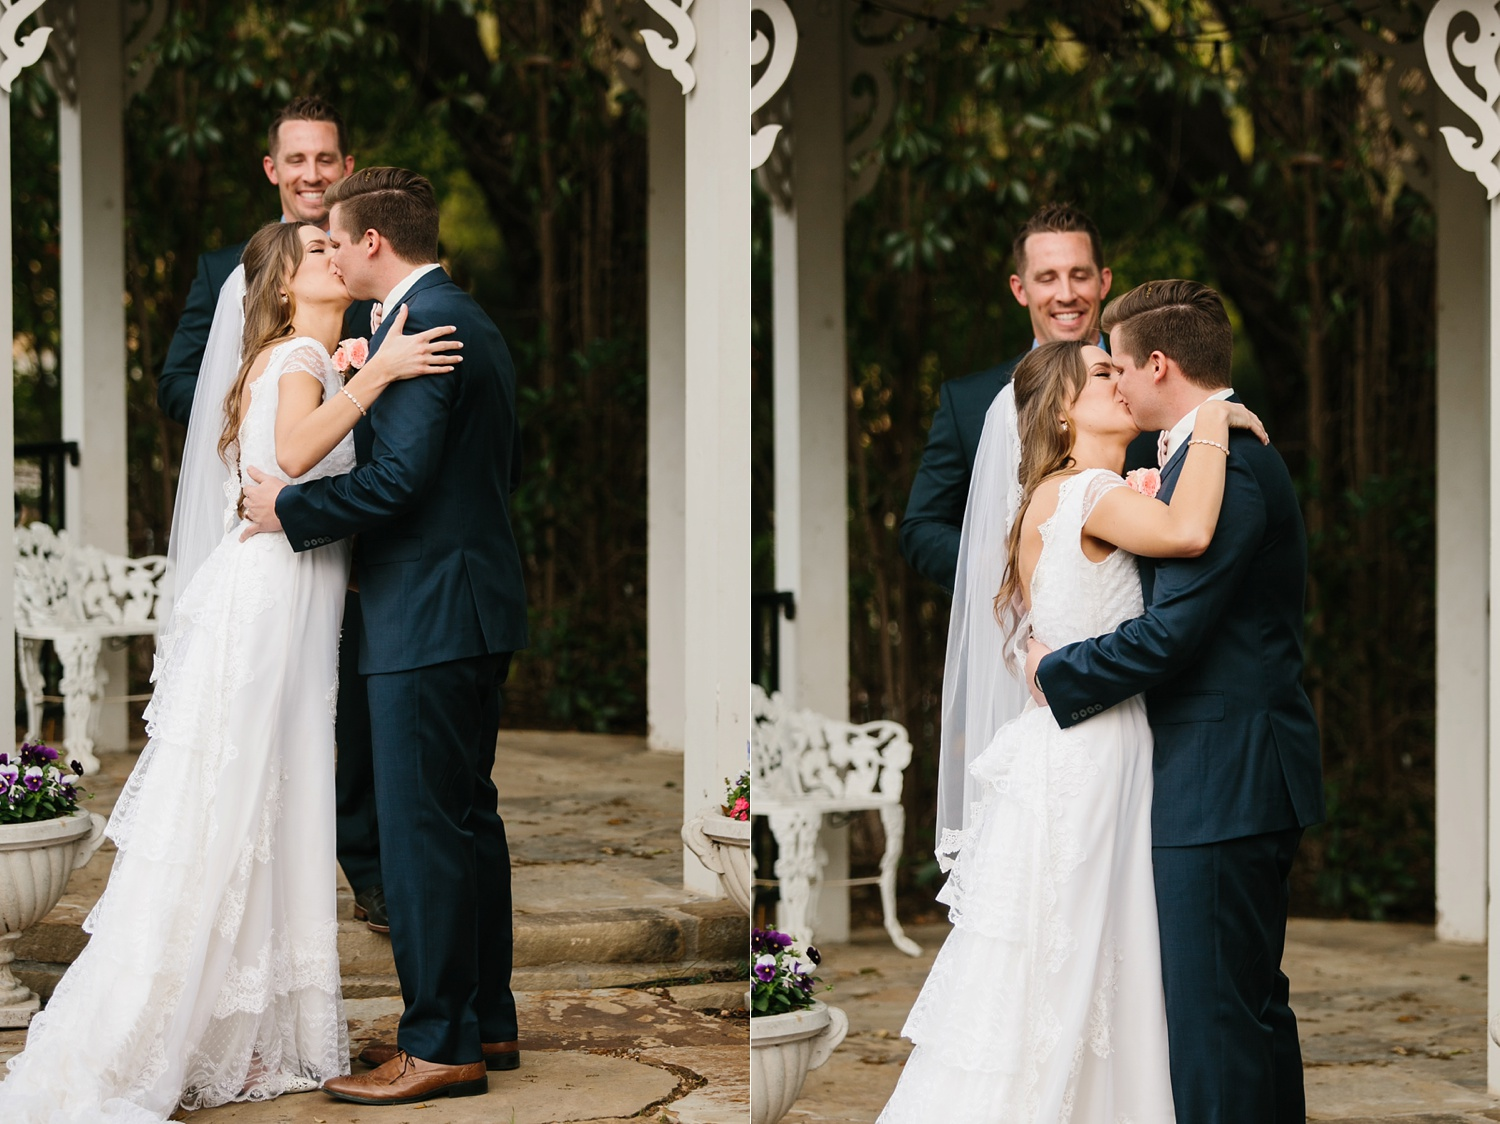 Amber + Daniel an intimate, simple, spring ceremony at Heard Craig Center and reception at Gather in McKinney, Texas by North Texas Wedding Photographer Rachel Meagan Photography 068